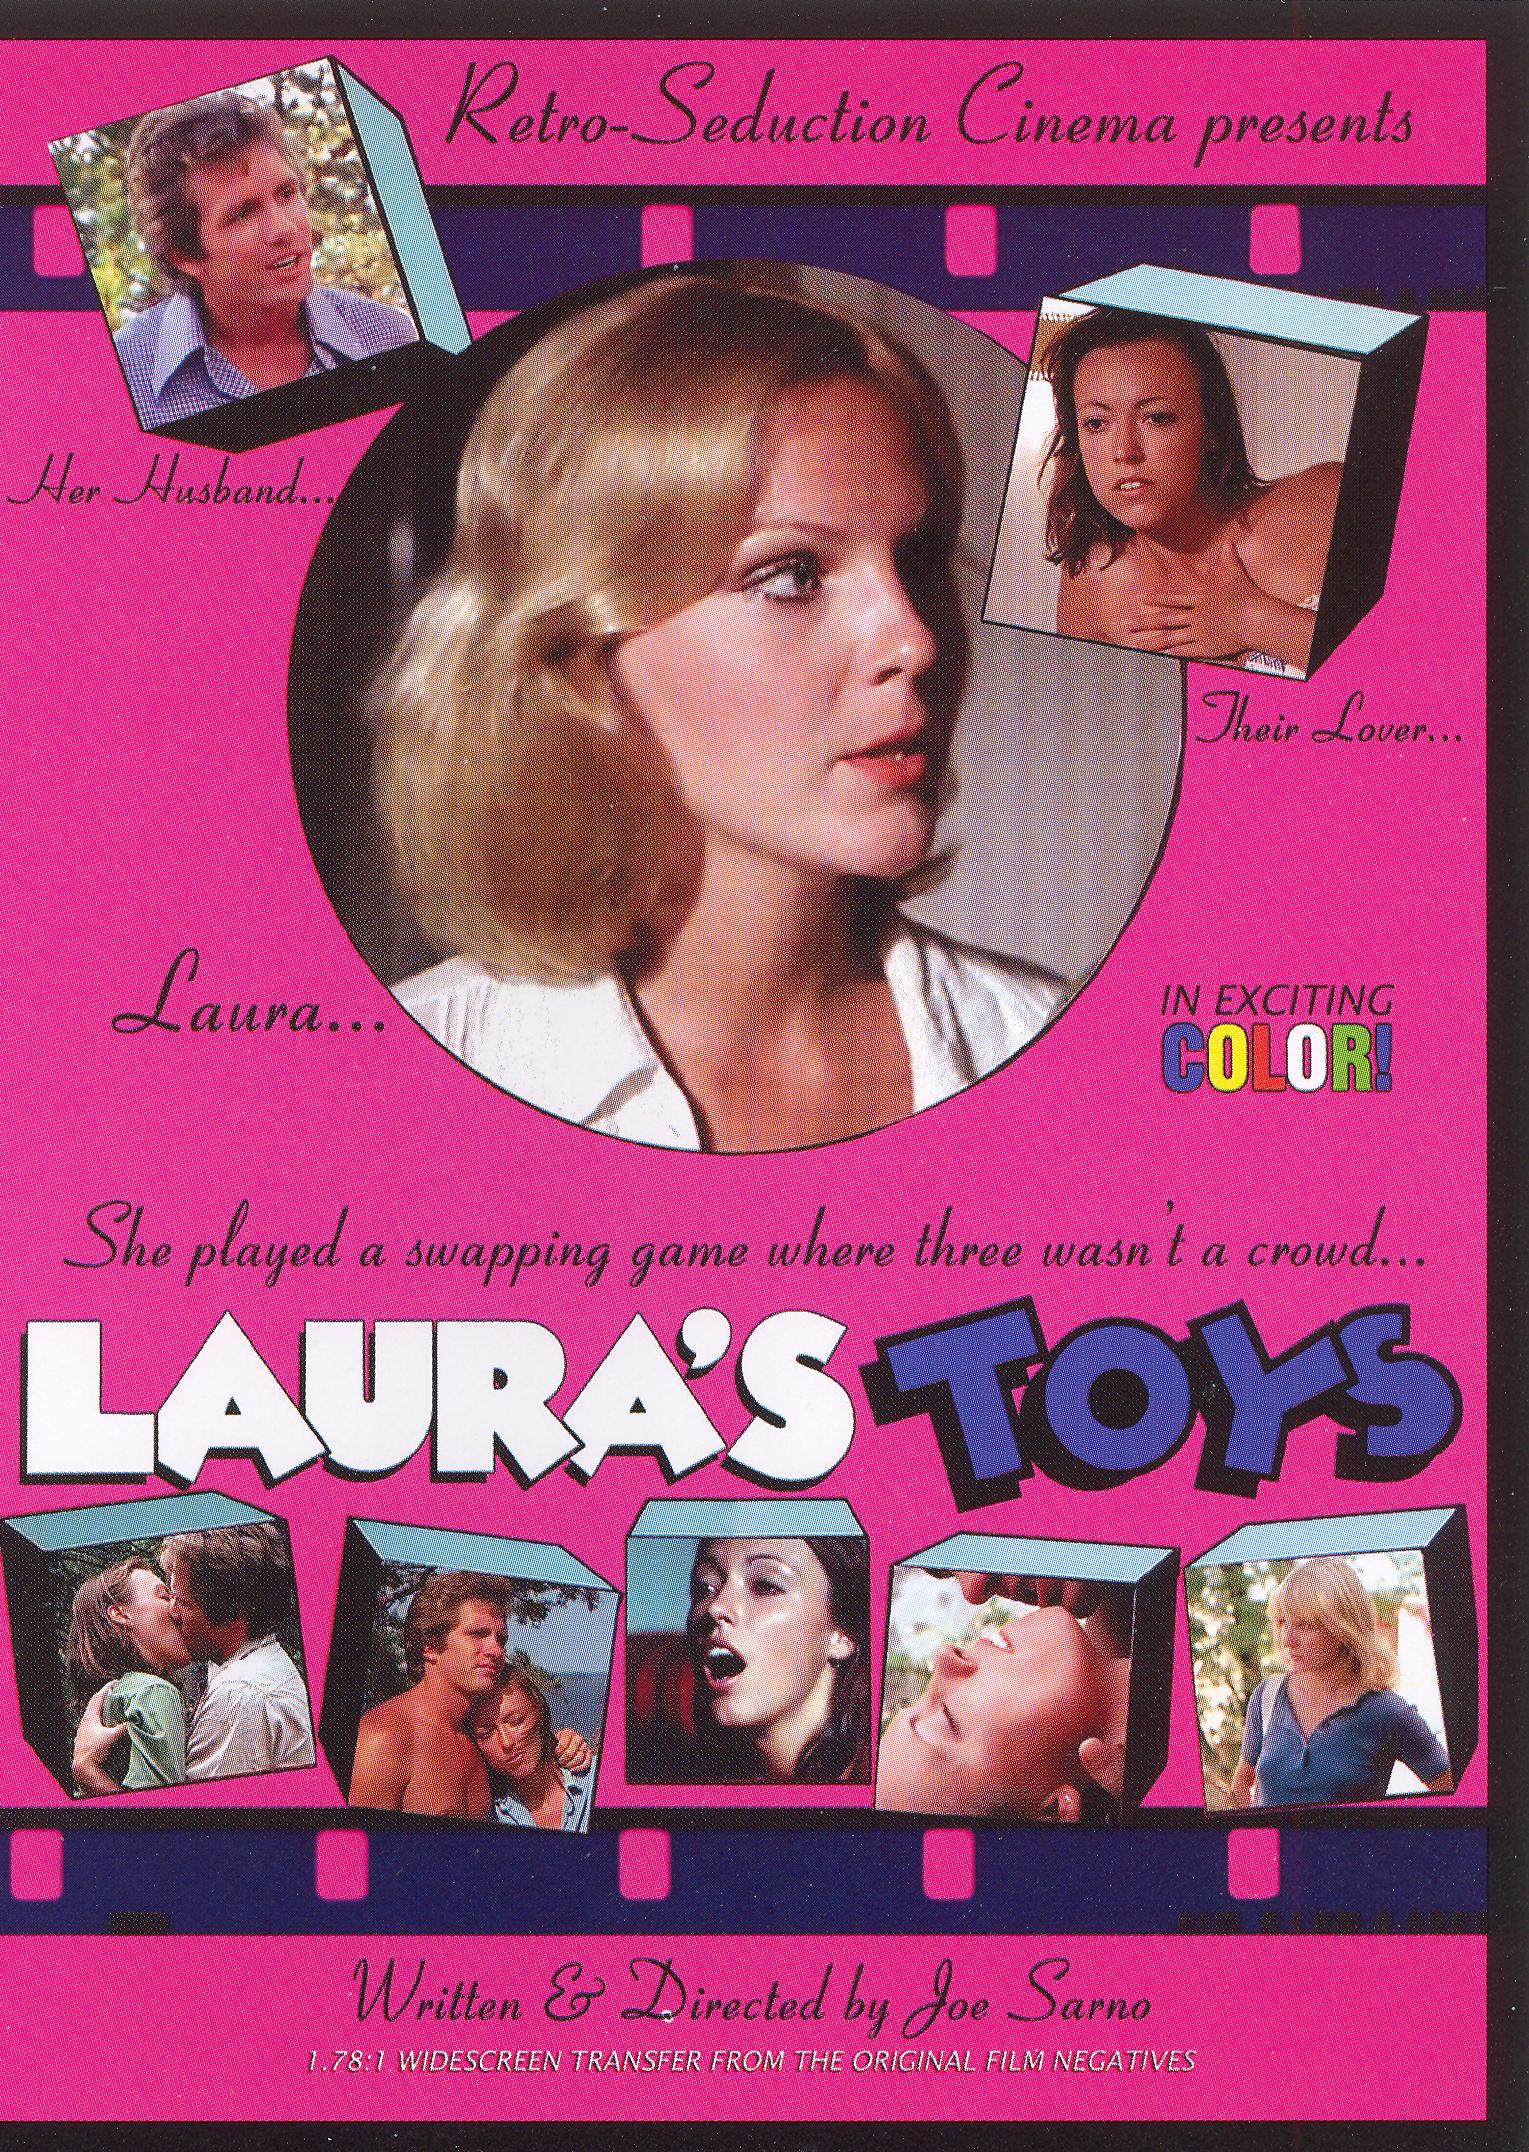 Lauras toys